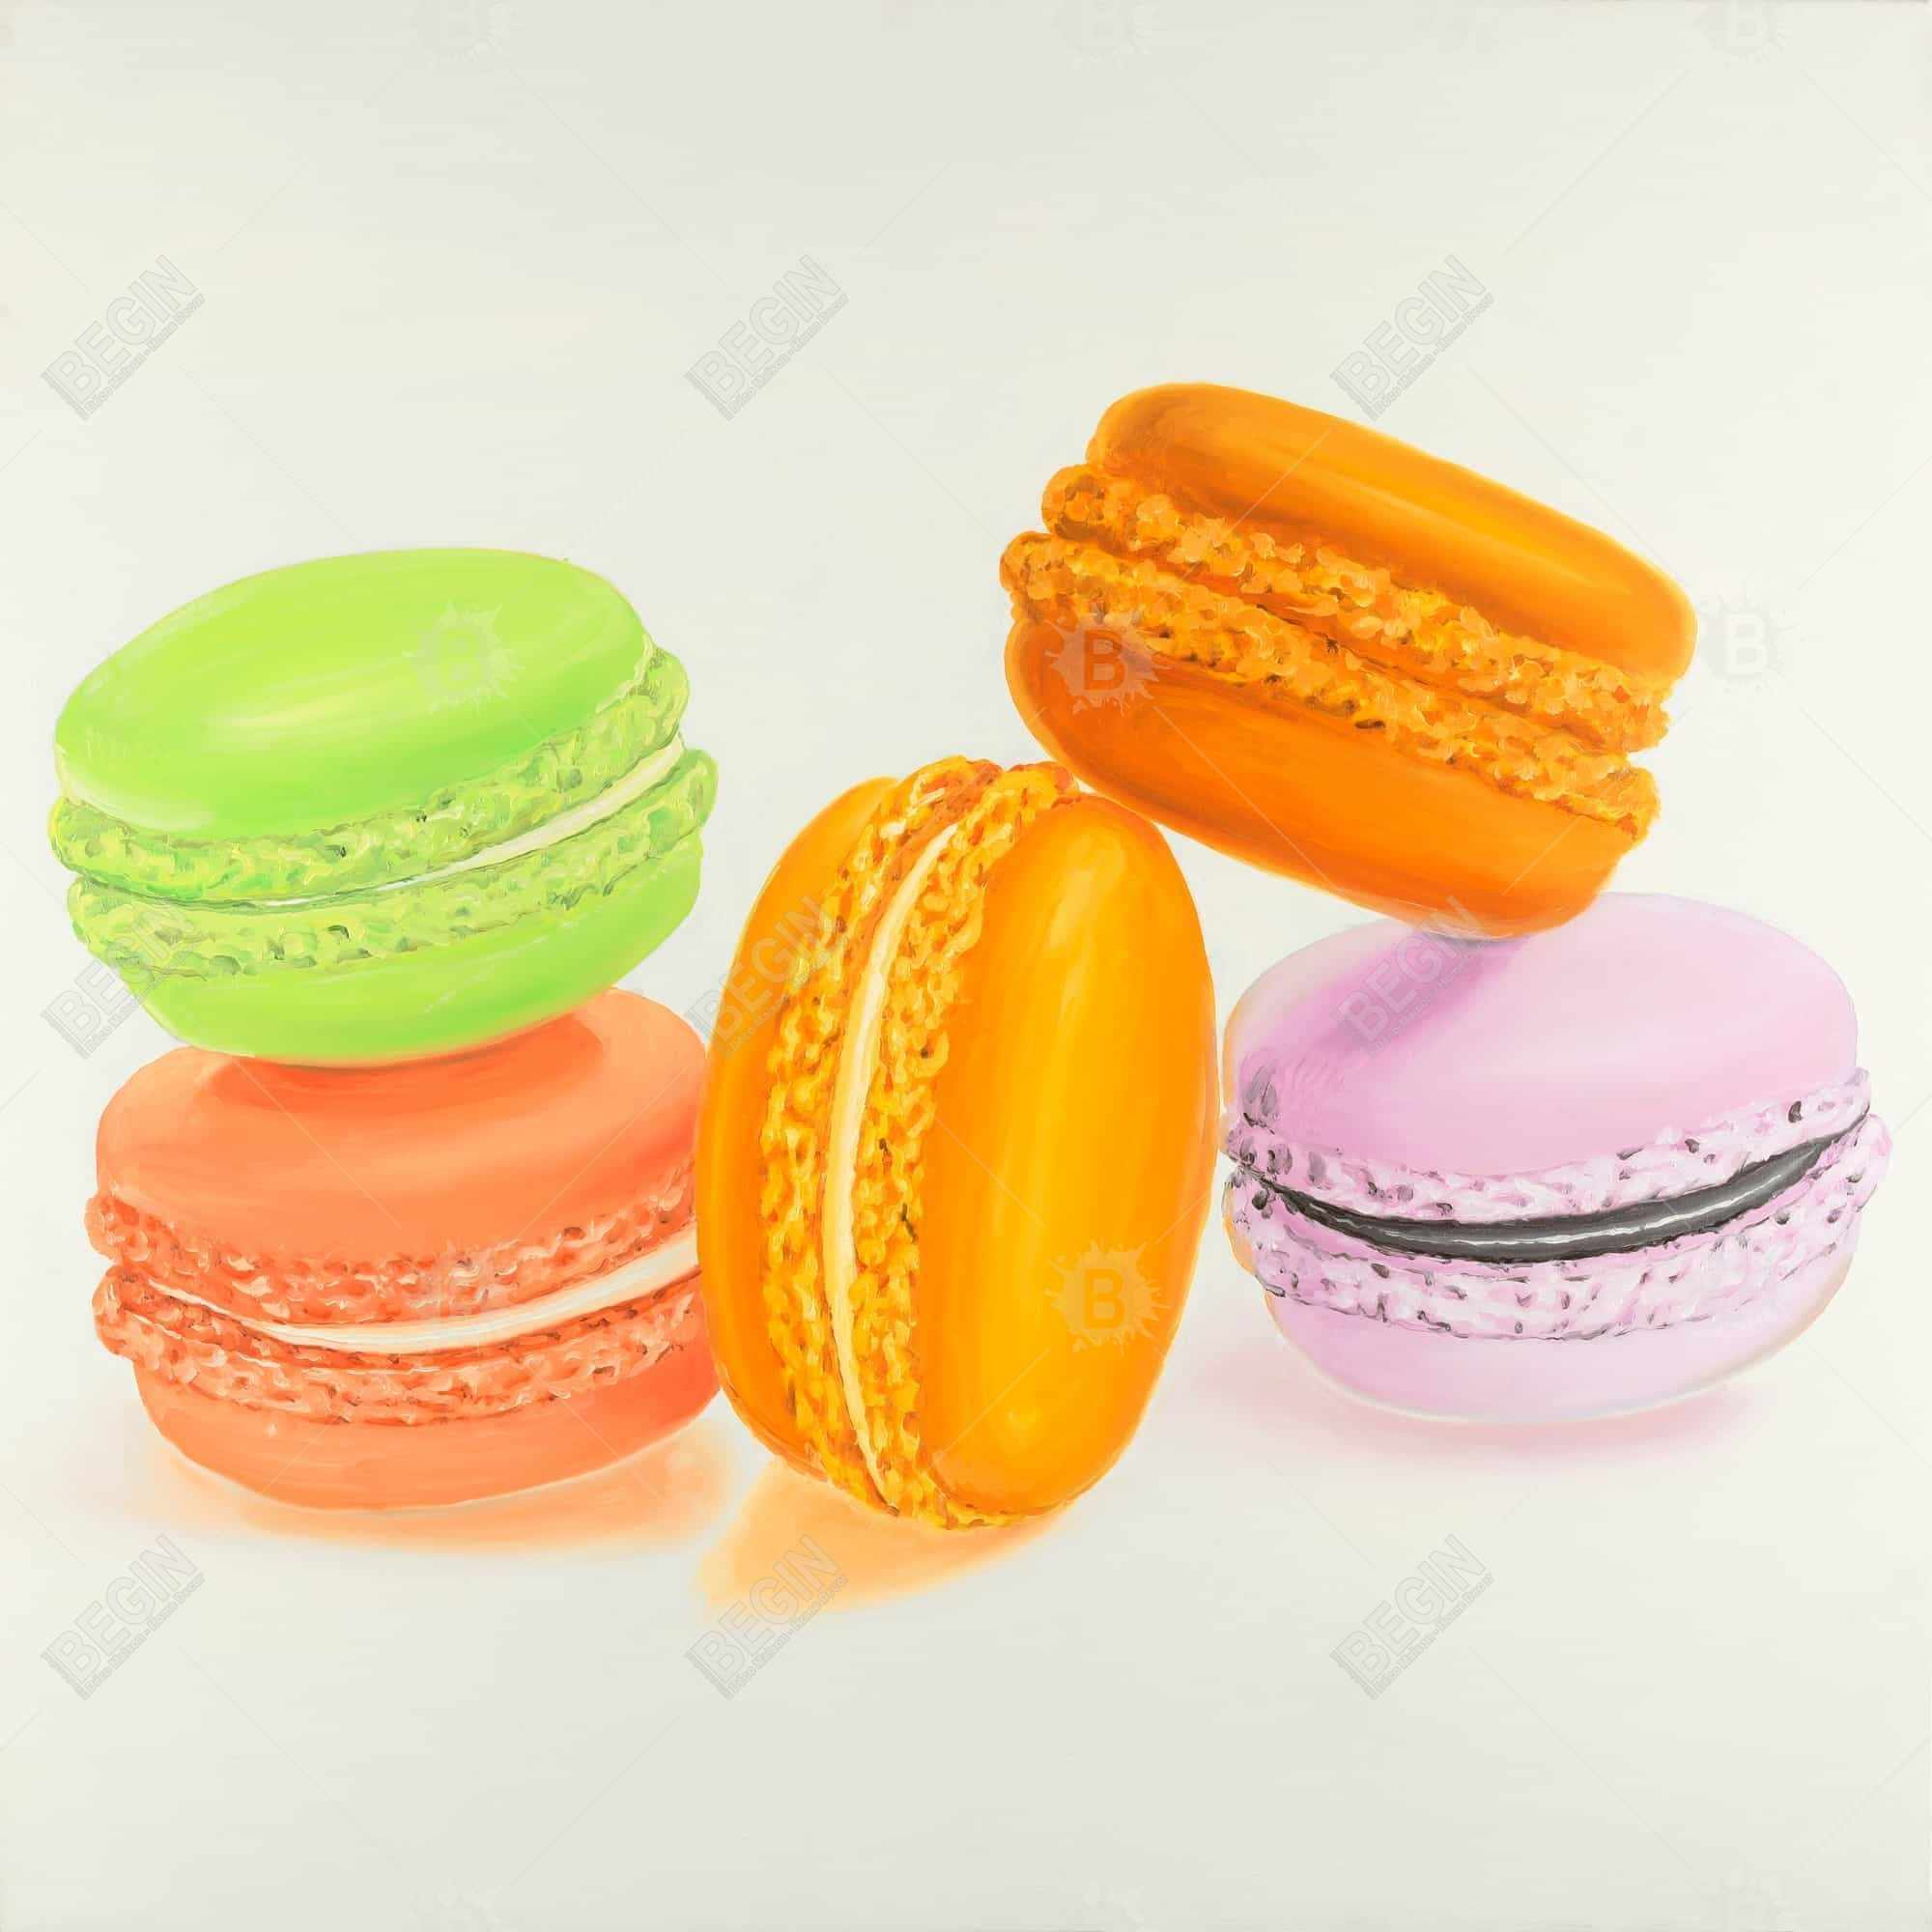 Small bites of macaroons